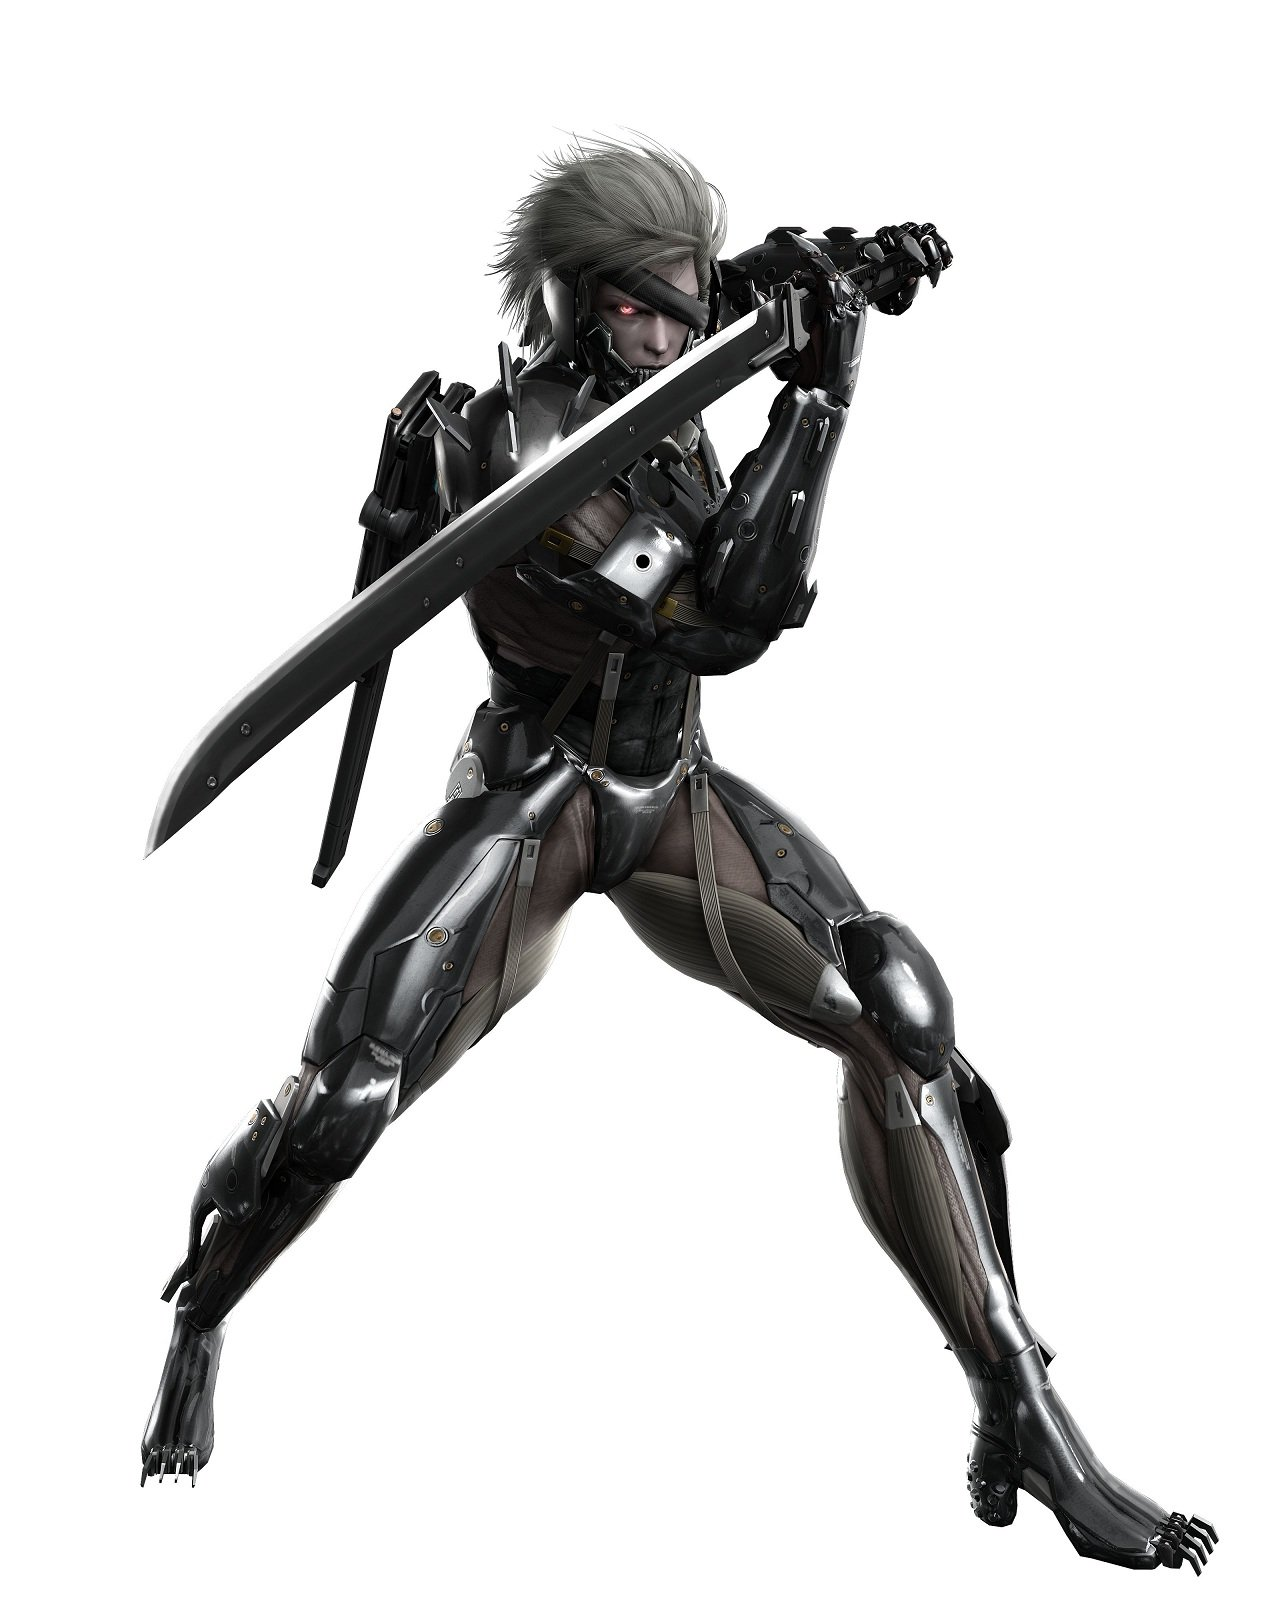 MGRR - Raiden